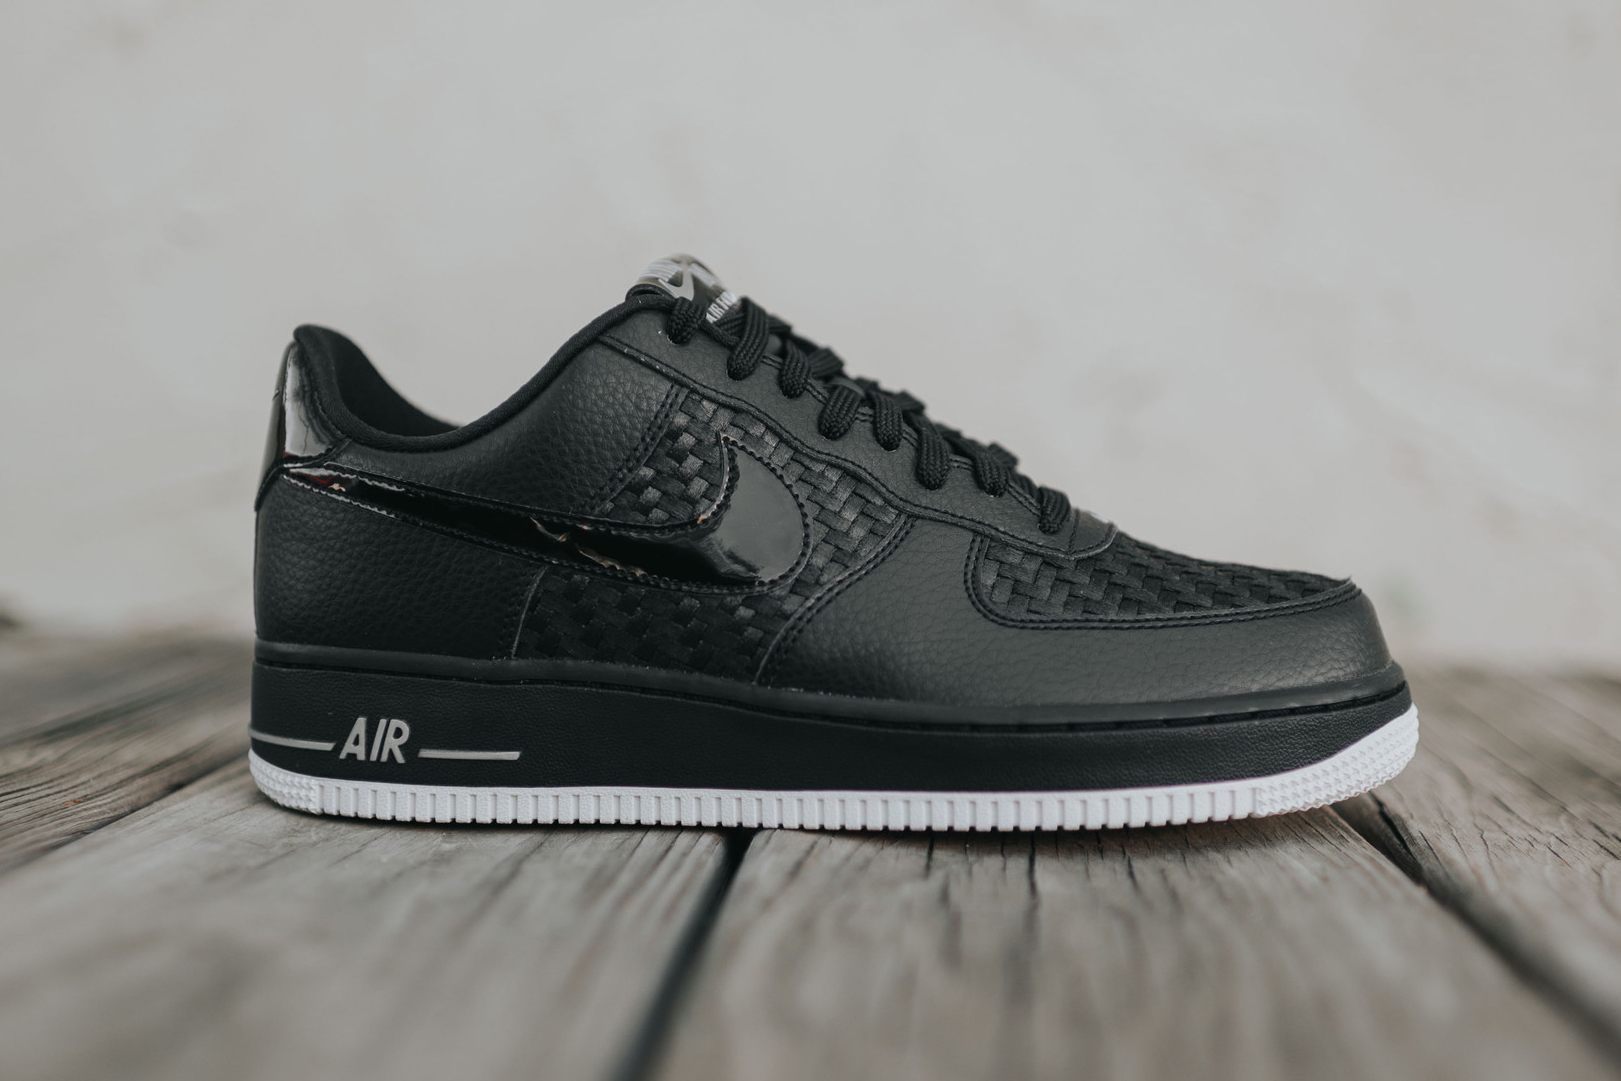 nike air force 1 low 07 lv8 black woven sneaker hypebeast. Black Bedroom Furniture Sets. Home Design Ideas